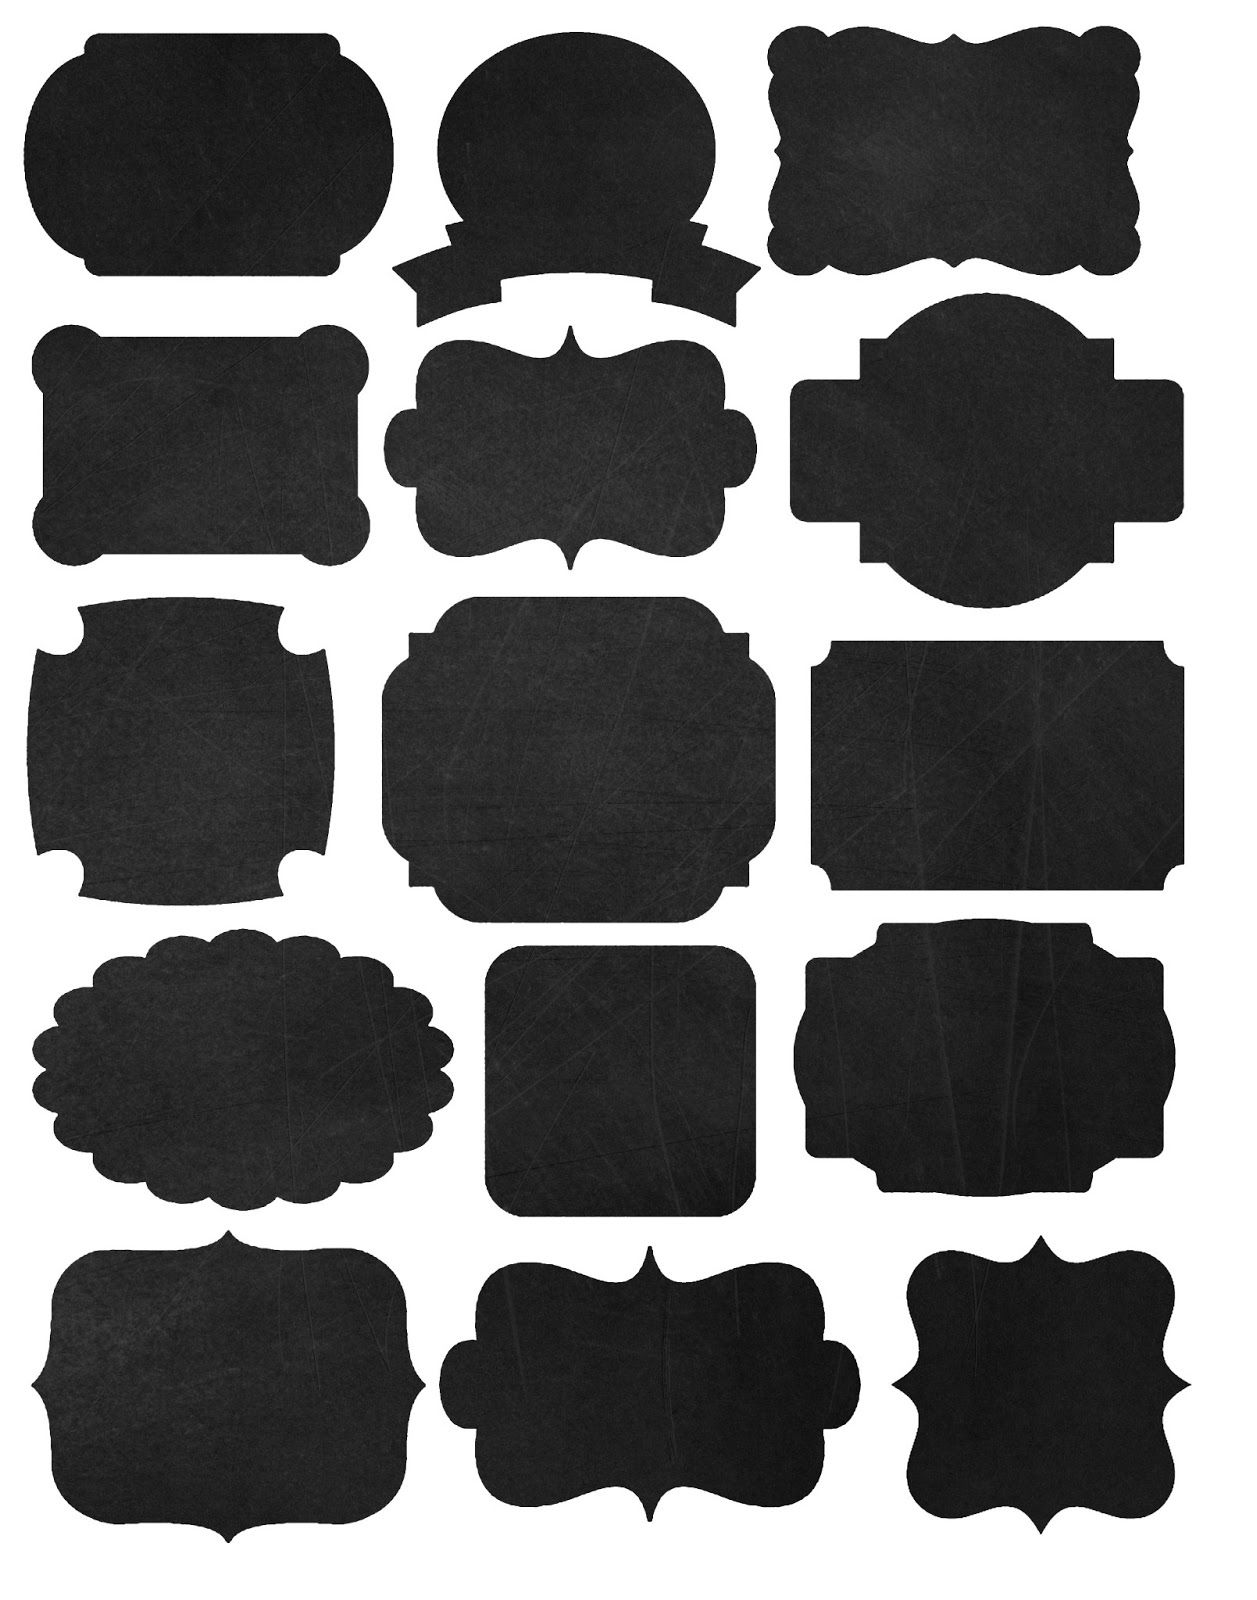 Freebies Printables Labels And Chalkboard Fonts Chalkboard Fonts Printable Labels Silhouette Cameo Projects